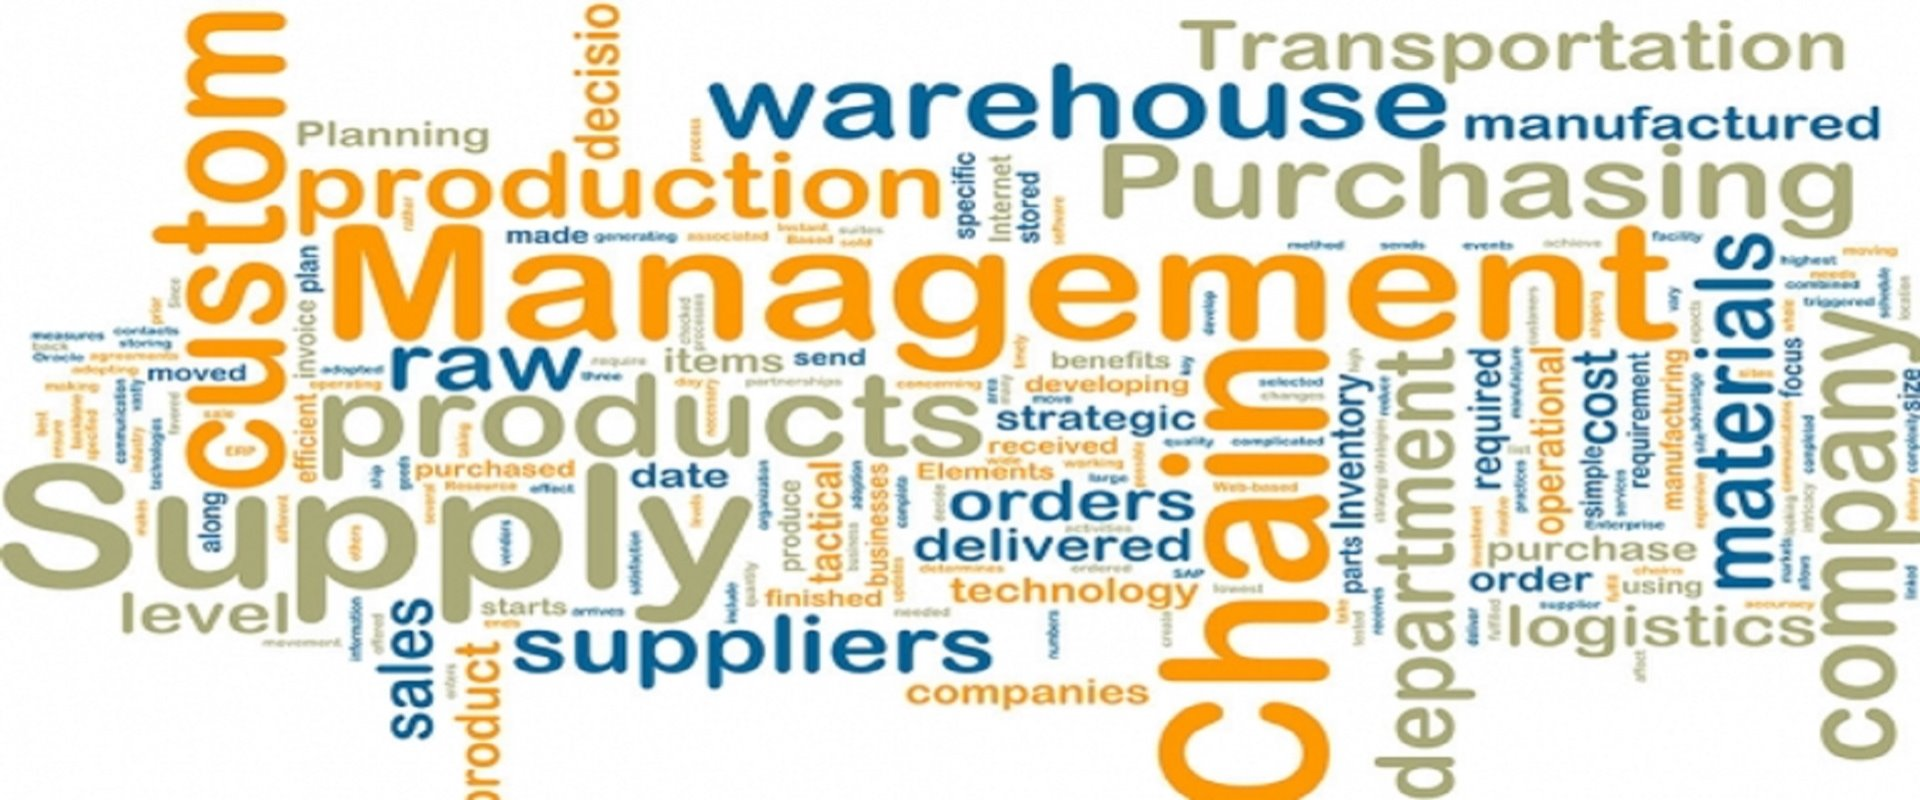 Boosting Productivity through Supply Chain Management